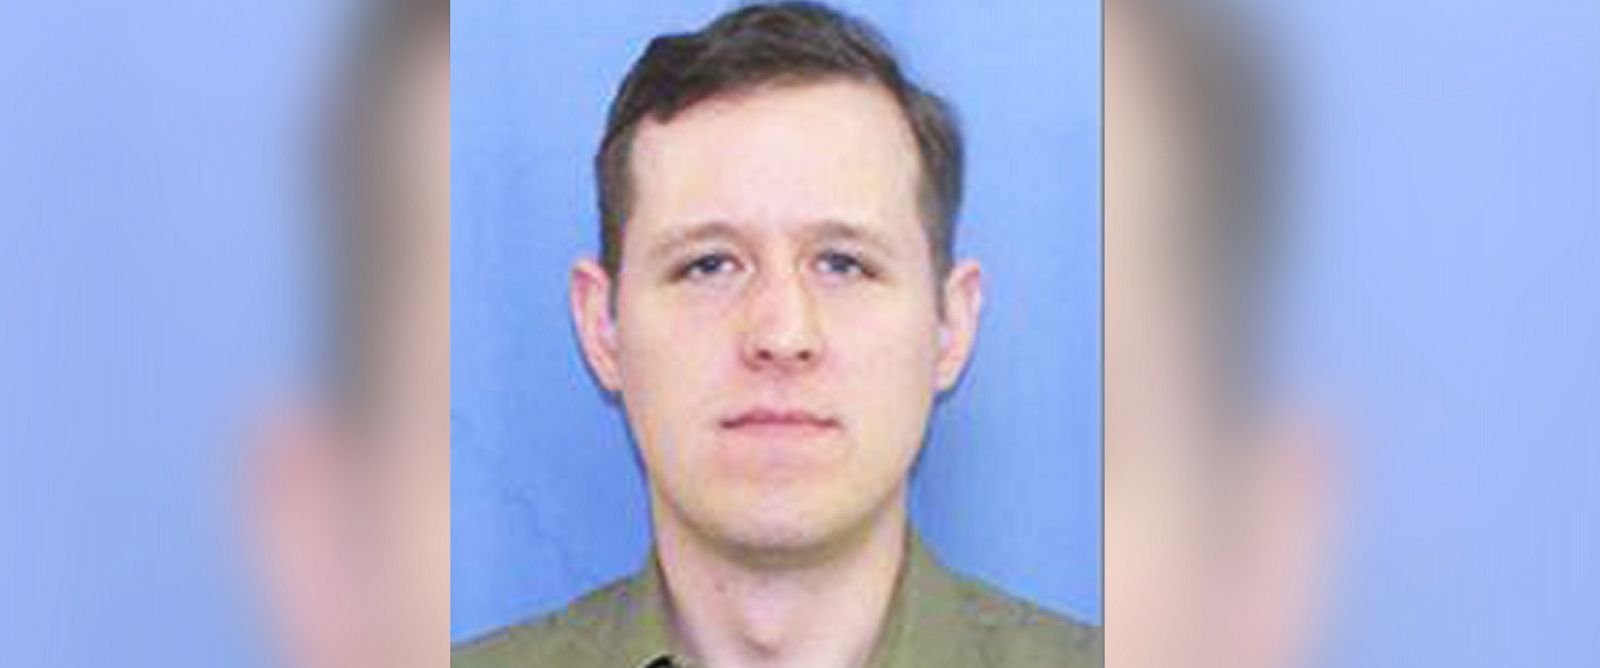 PHOTO: Eric Matthew Frein, is seen here in a police mug shot from the Pennsylvania Department of Transportation.